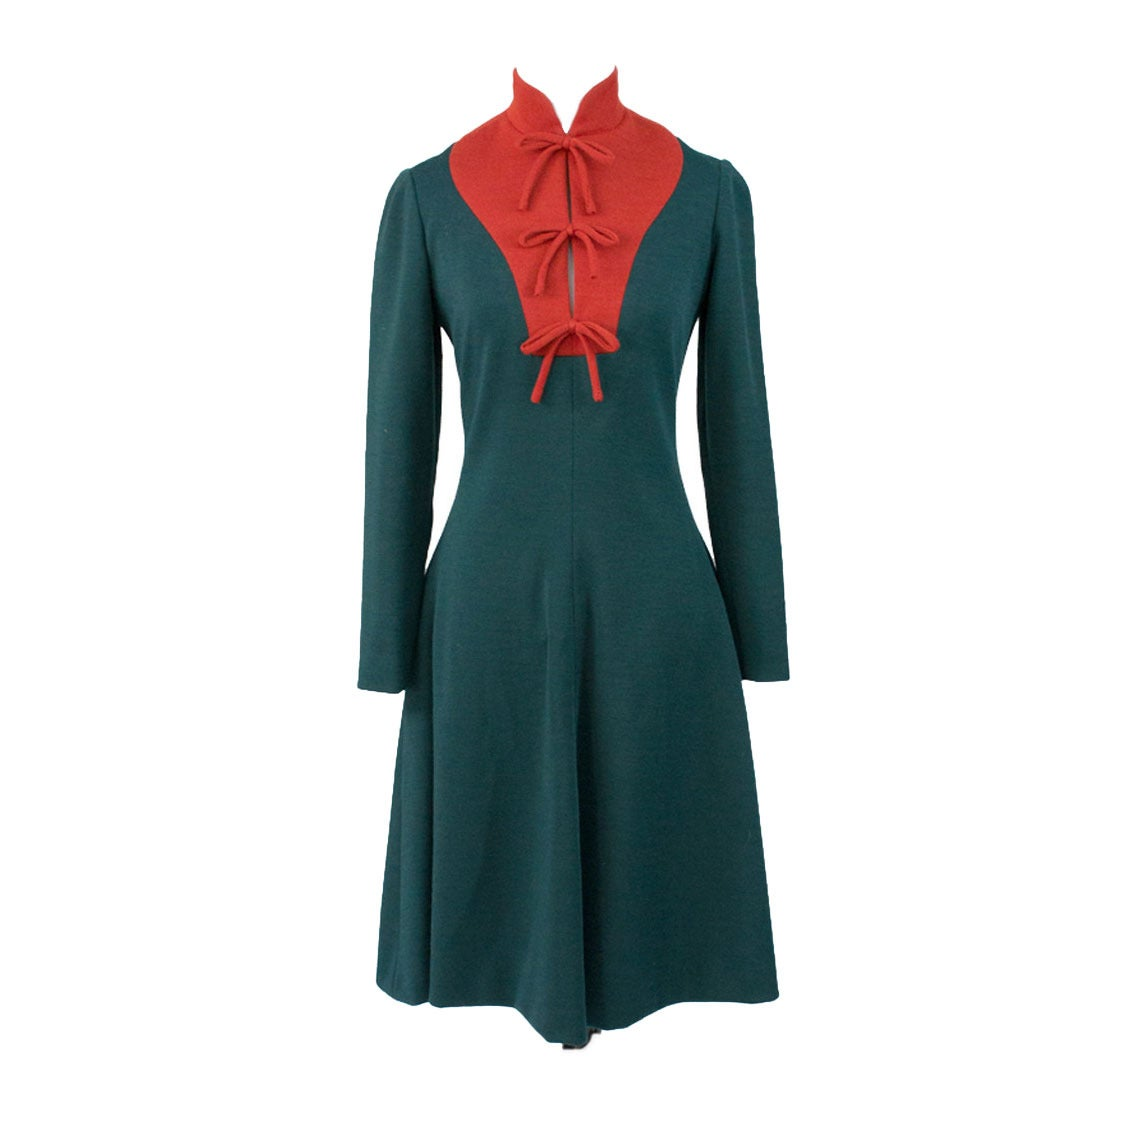 Geoffrey Beene Boutique Vintage Dress Red Green Early 1970s 1